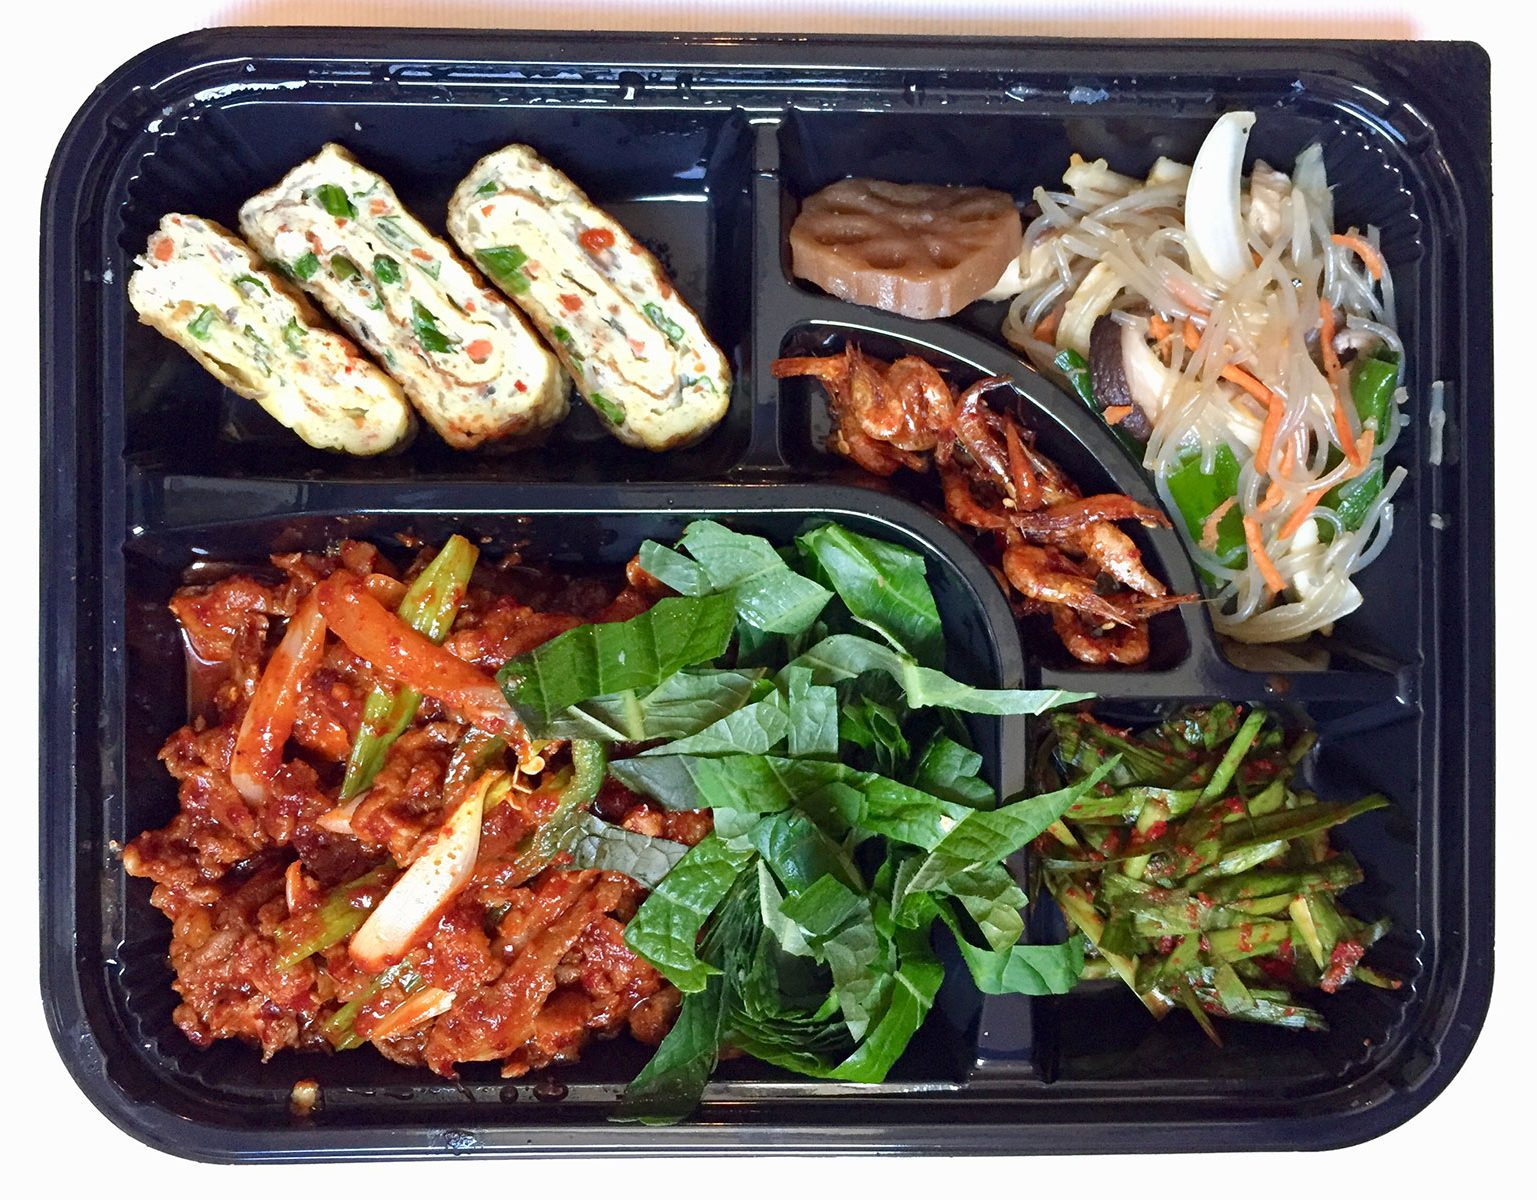 Fullerton S Heartful Made Makes Korean Food That S Perfect